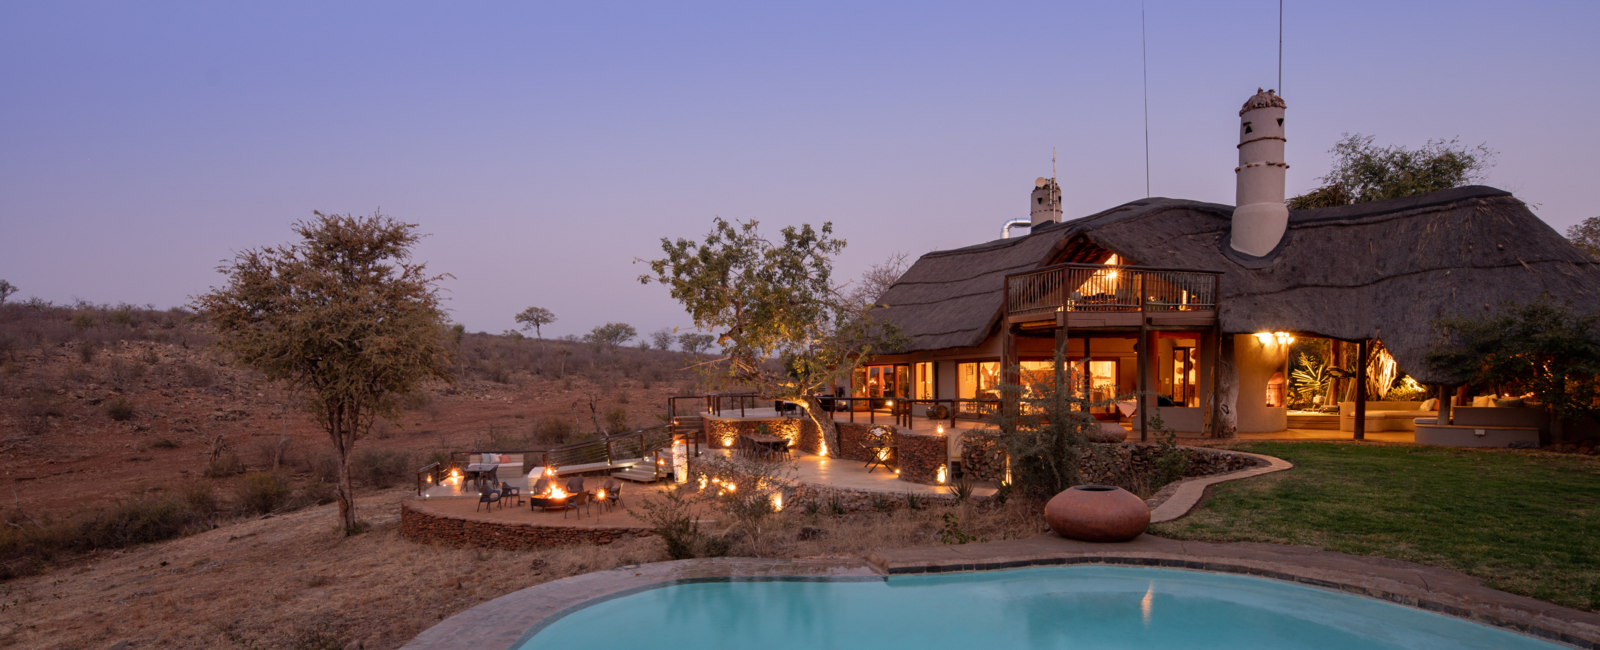 Royal Madikwe Luxury Safari Lodge